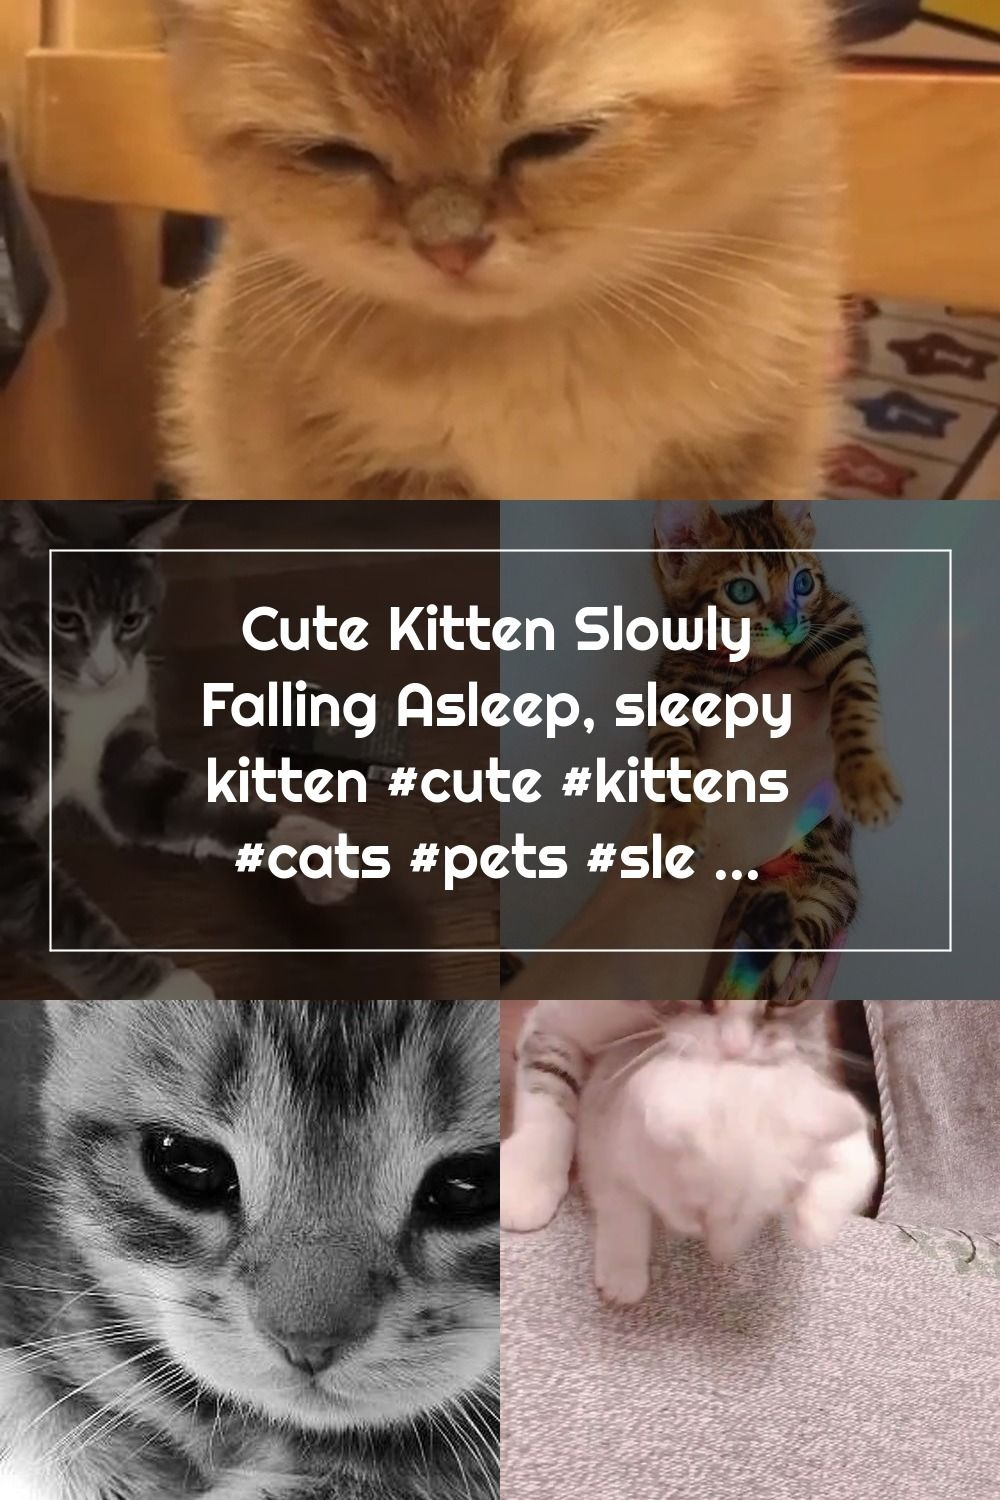 Cute Kitten Slowly Falling Asleep Sleepy Kitten Cute Kittens Cats Pets Sleeping In 2020 Sleepy Kitten Kittens Cutest Cats And Kittens